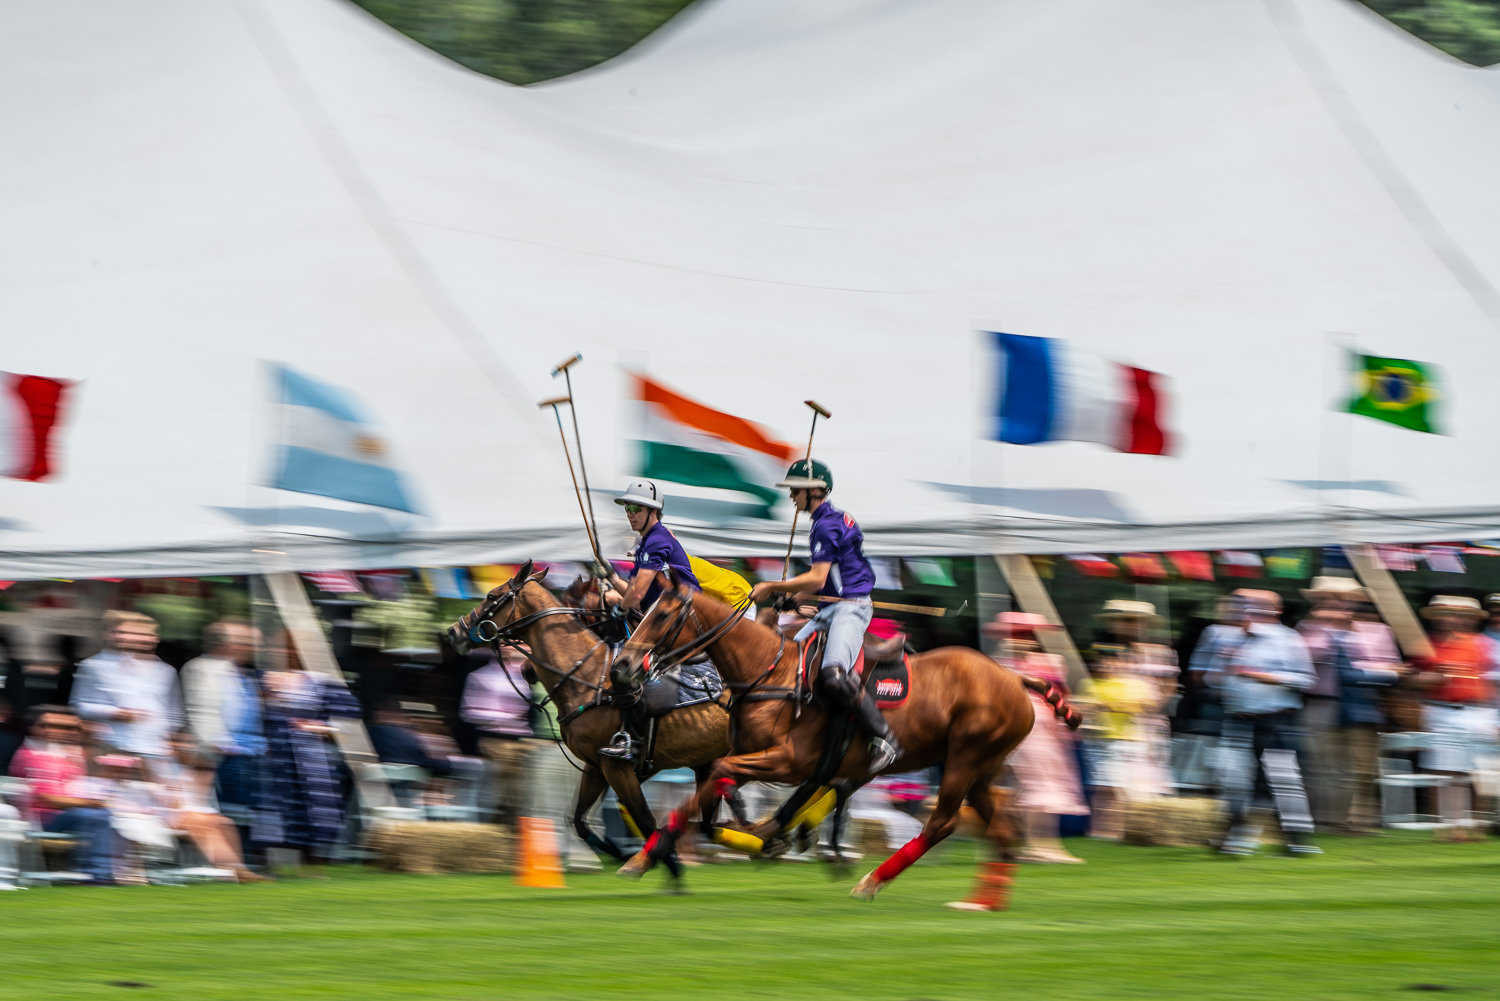 Action in front of the tent at the Mashomack polo club in pine plains, ny. blurs help define the speed of the game..jpg